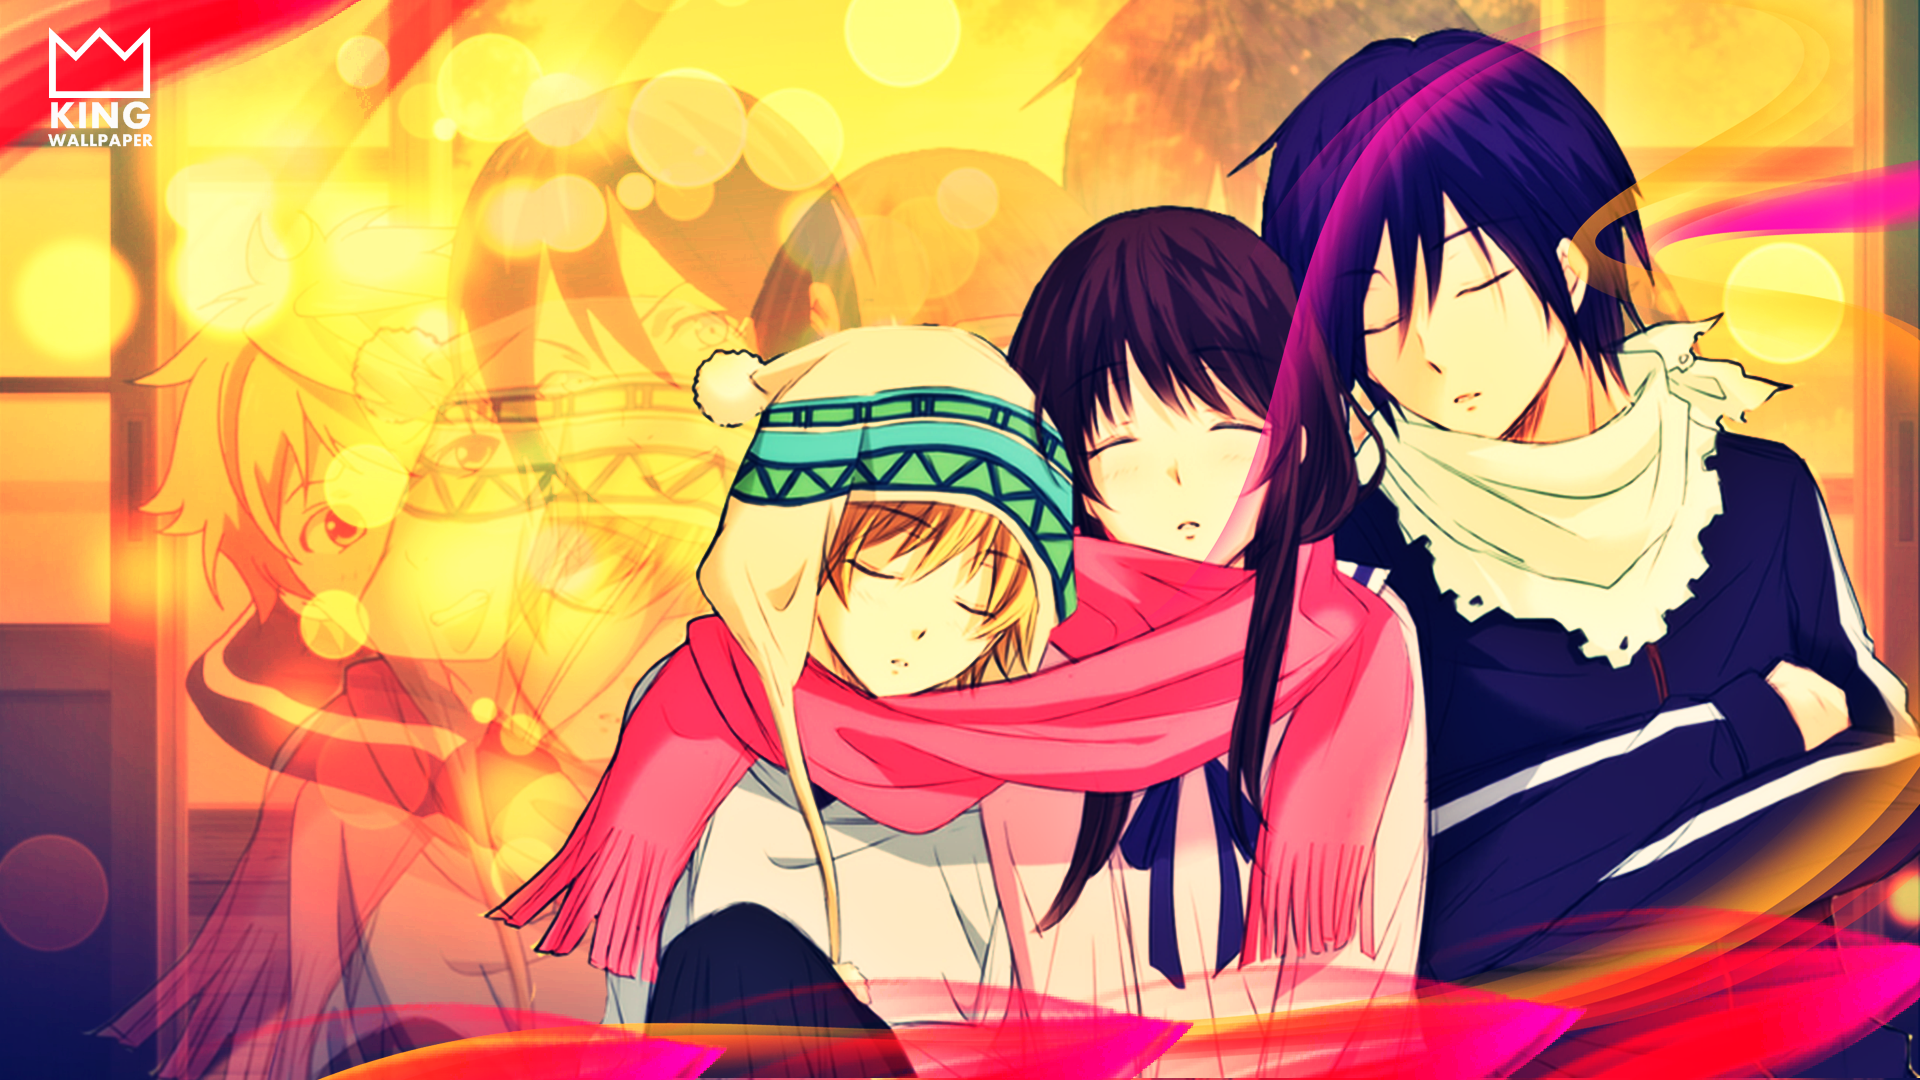 cute wallpaper for computer noragami - photo #6